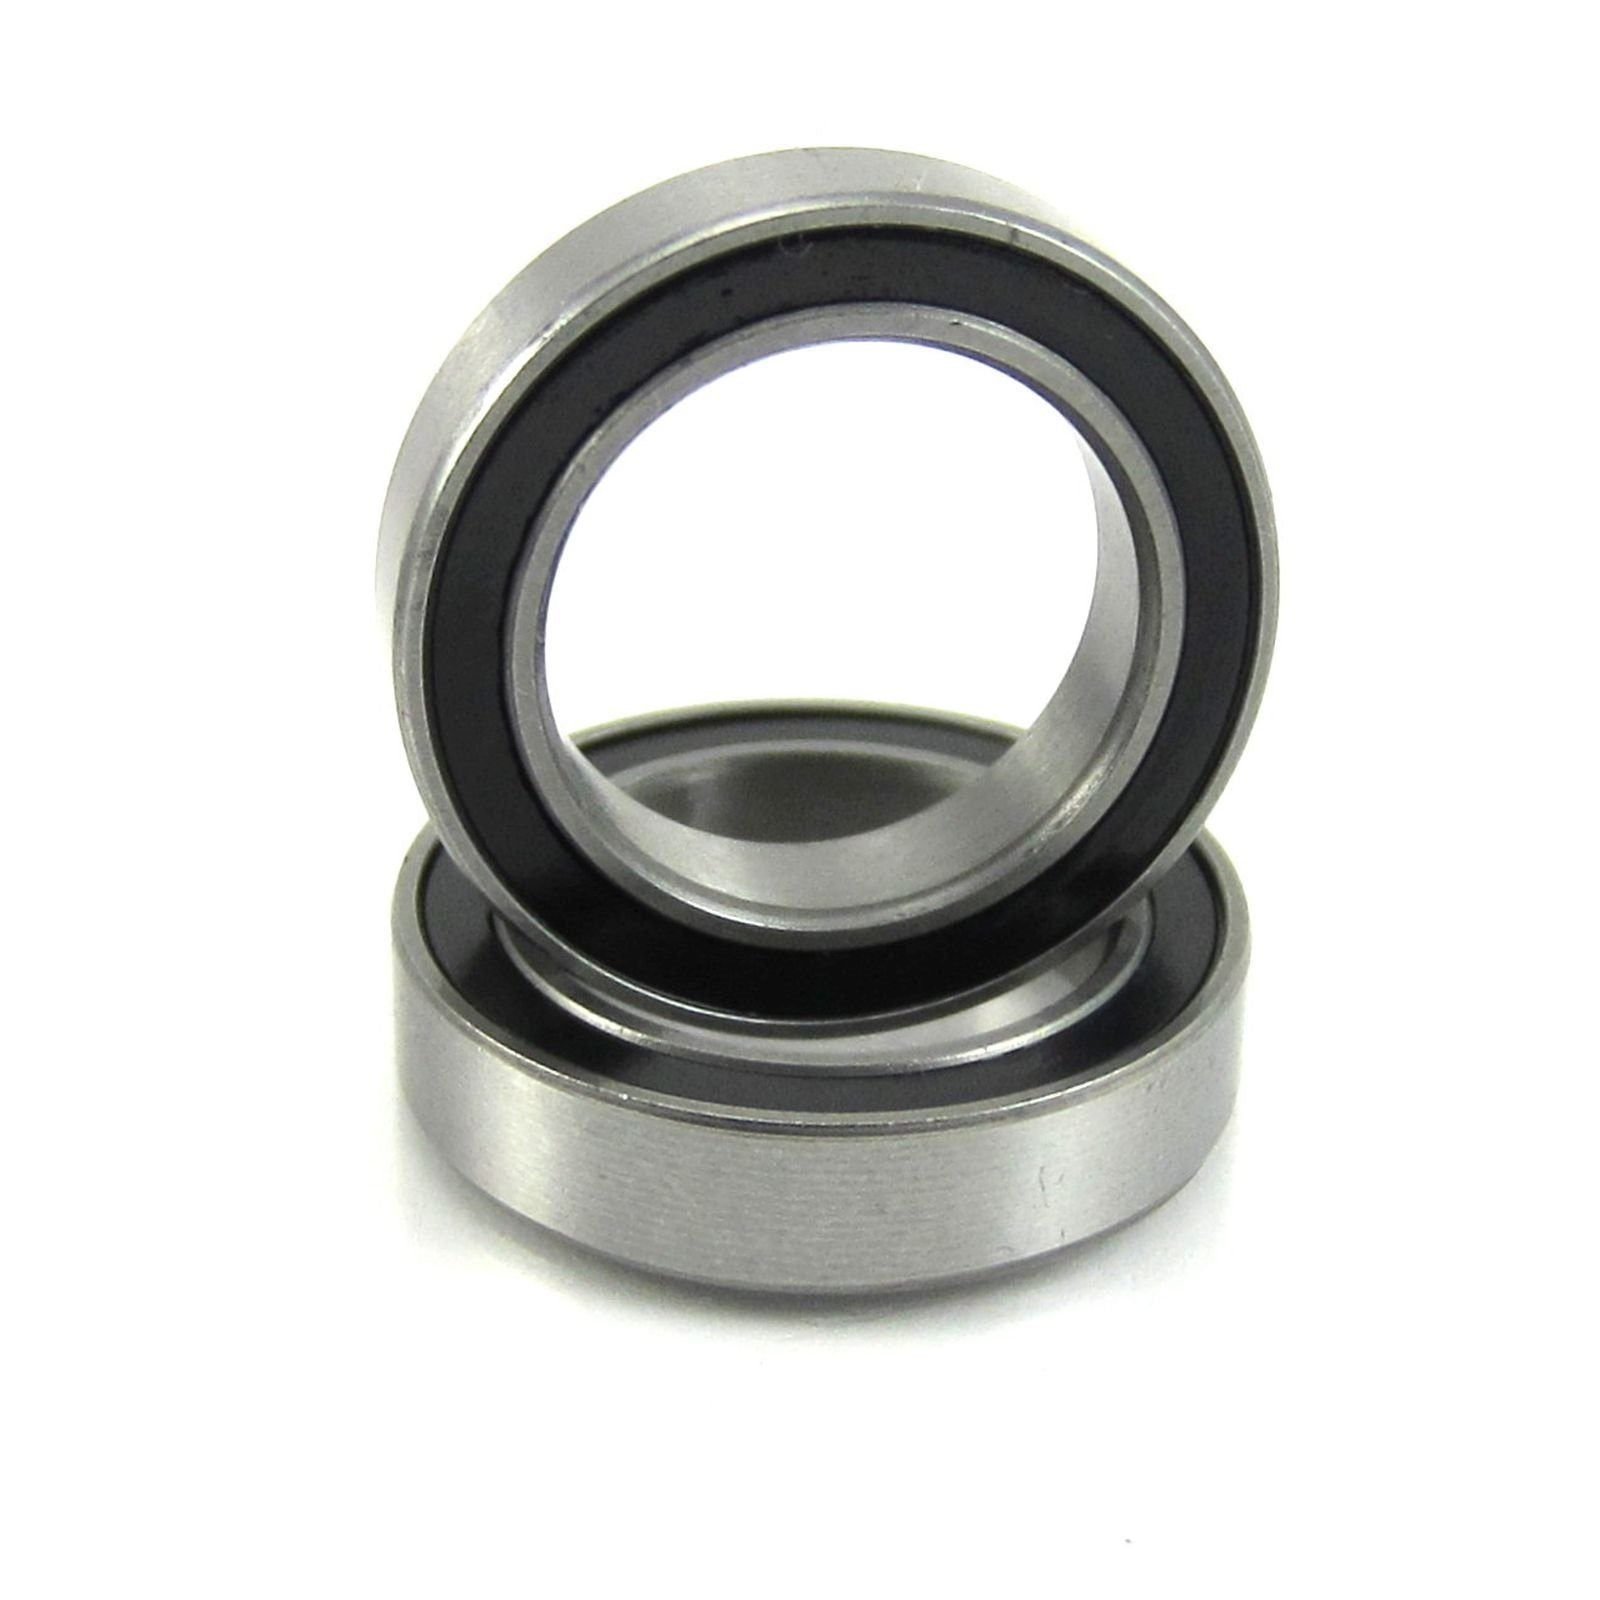 TRB RC 12x18x4mm Precision Ball Bearings Stainless Steel Rubber Sealed (2) - trb-rc-bearings